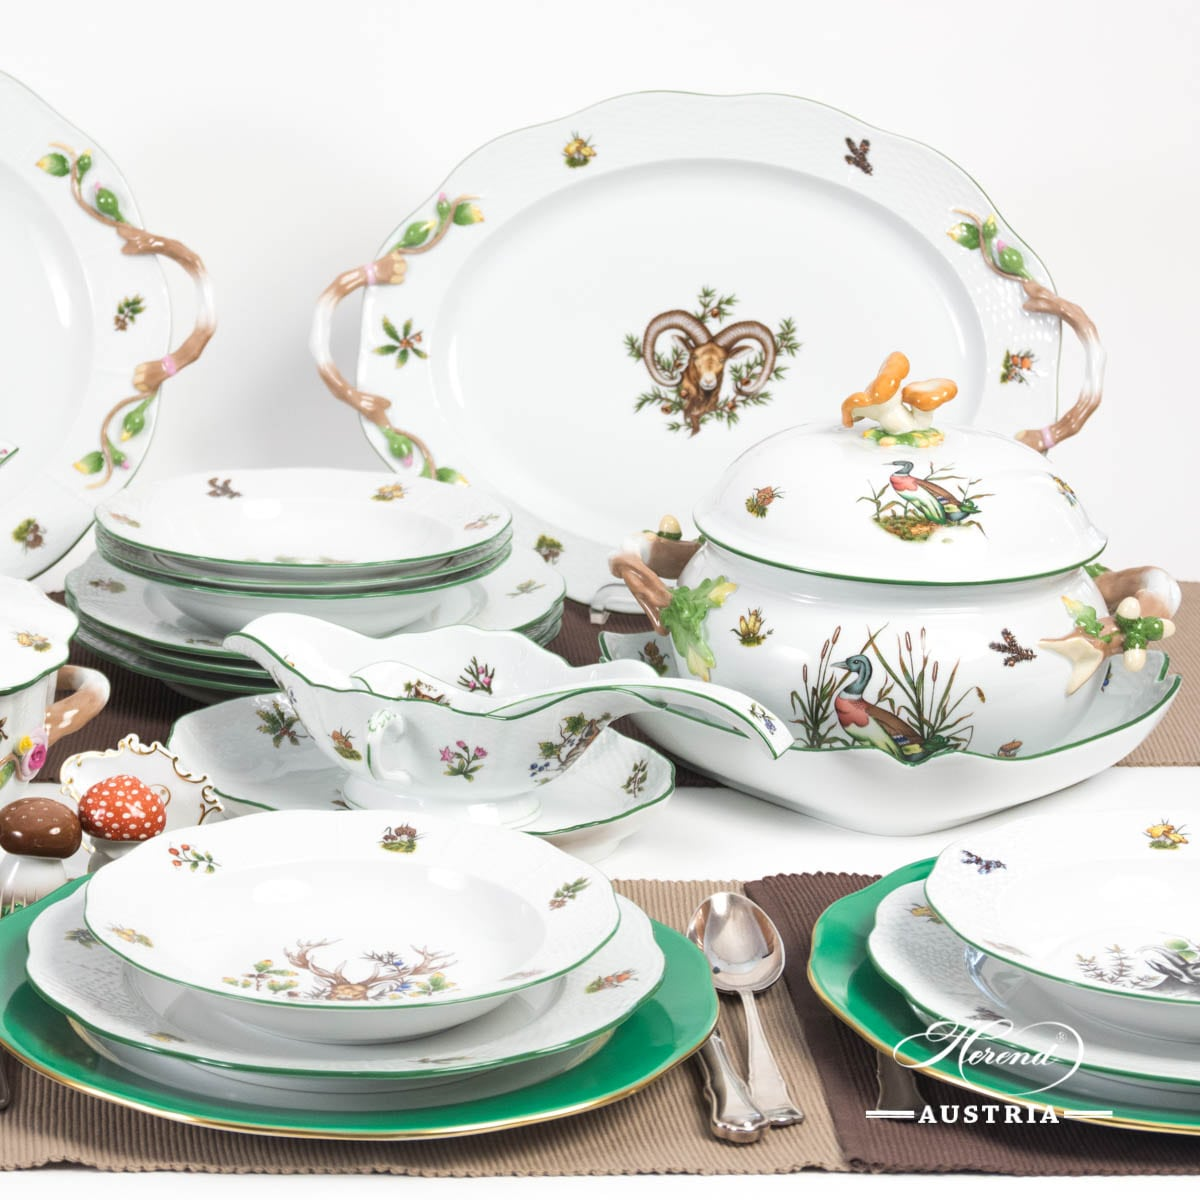 Dinner Set for 6 Persons - Herend Hunter Trophies CHTM pattern. Green Rim. Herend fine china hand painted. Tableware